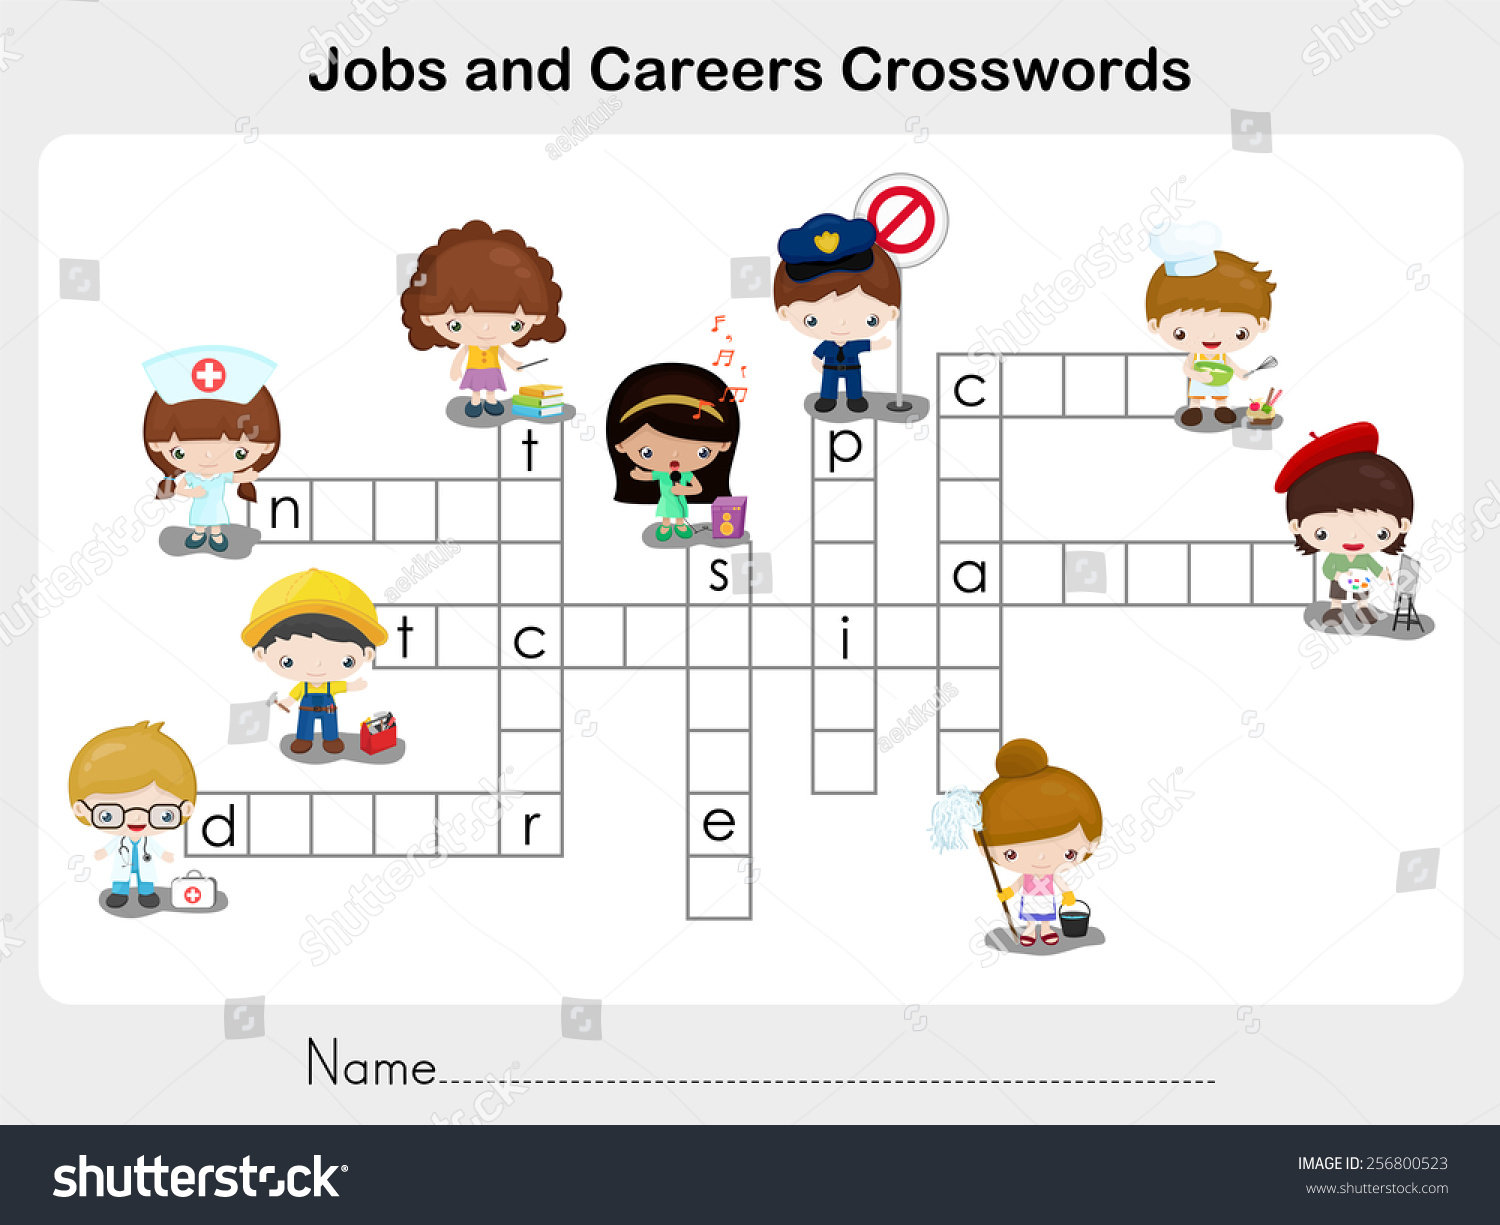 Jobs Careers Crosswords Worksheet Education Stock Vector